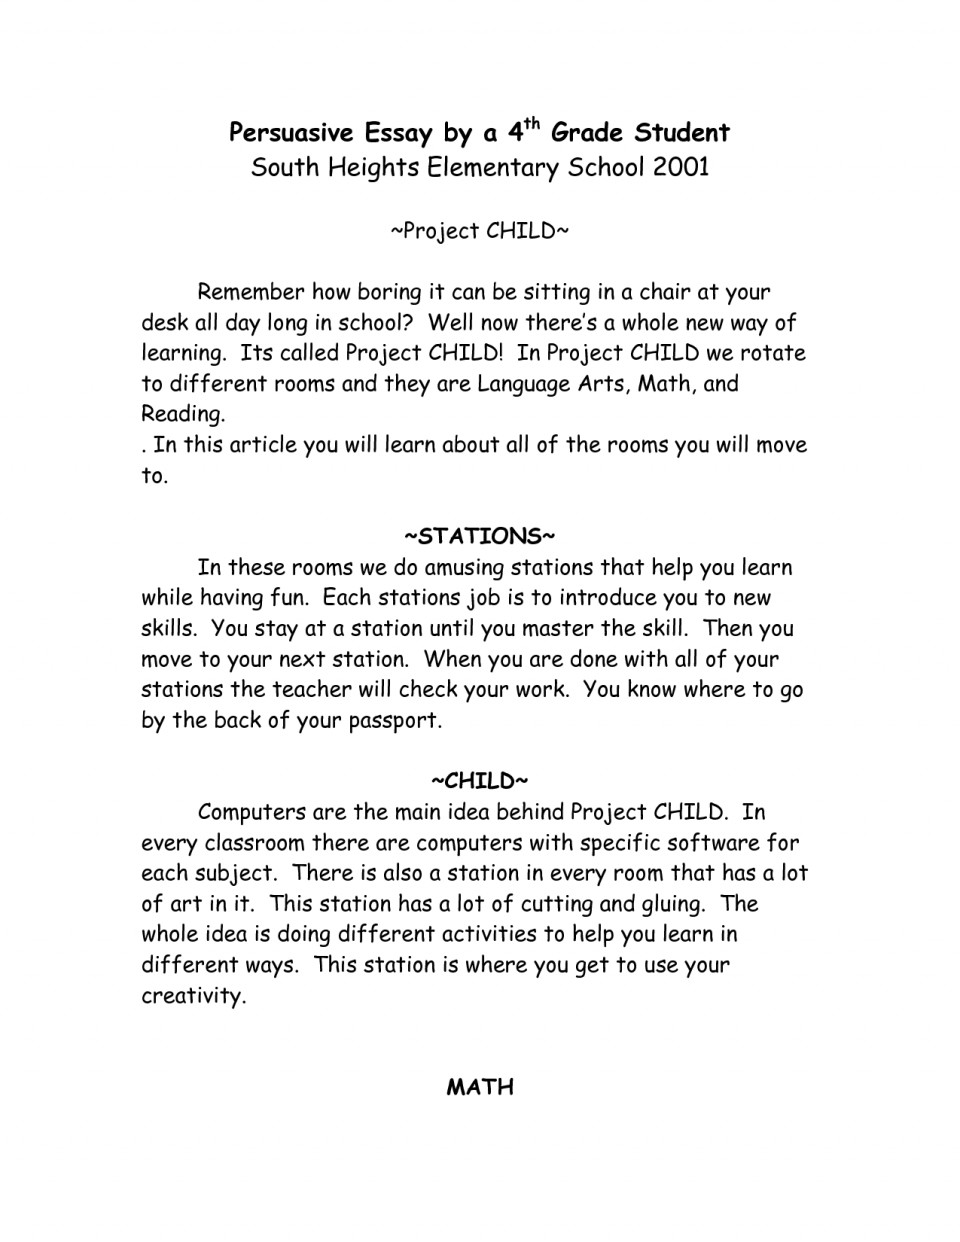 014 How To Start An Essay 2nmmxqusgx Amazing Analysis On A Book Ways With Question About Two Books 960